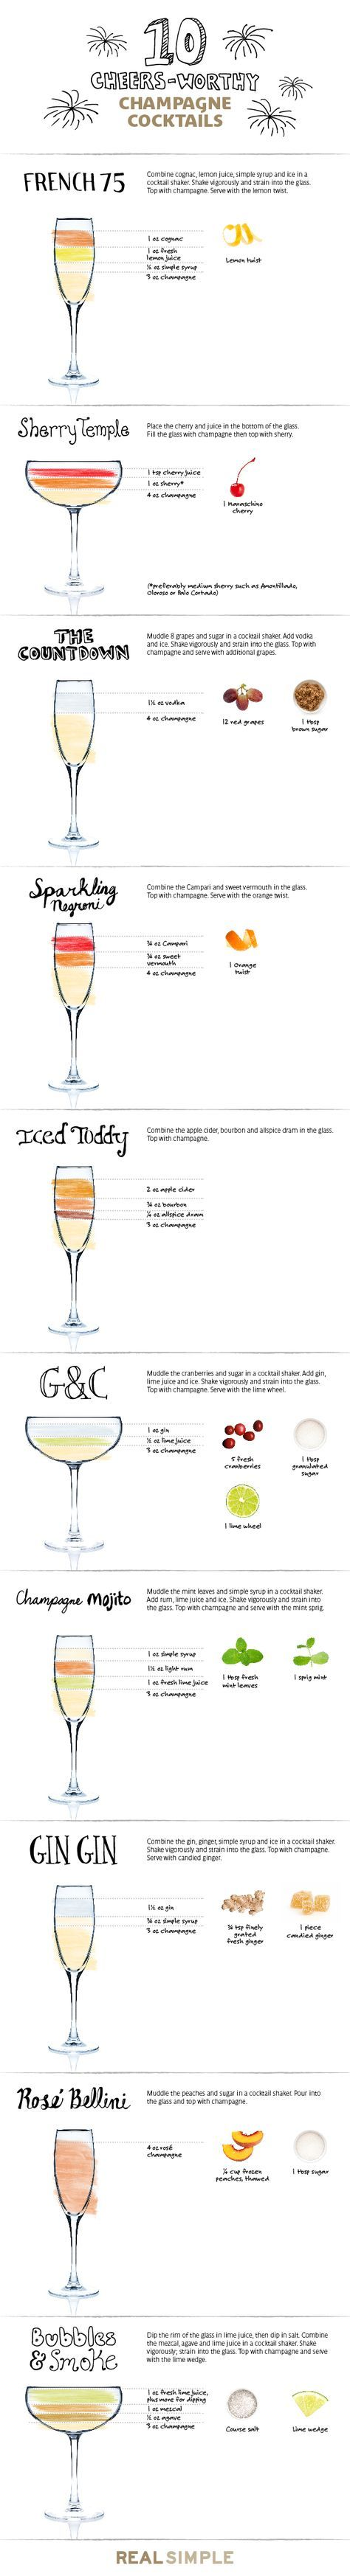 Say cheers! These original ideas elevate plain champagne into something truly special.